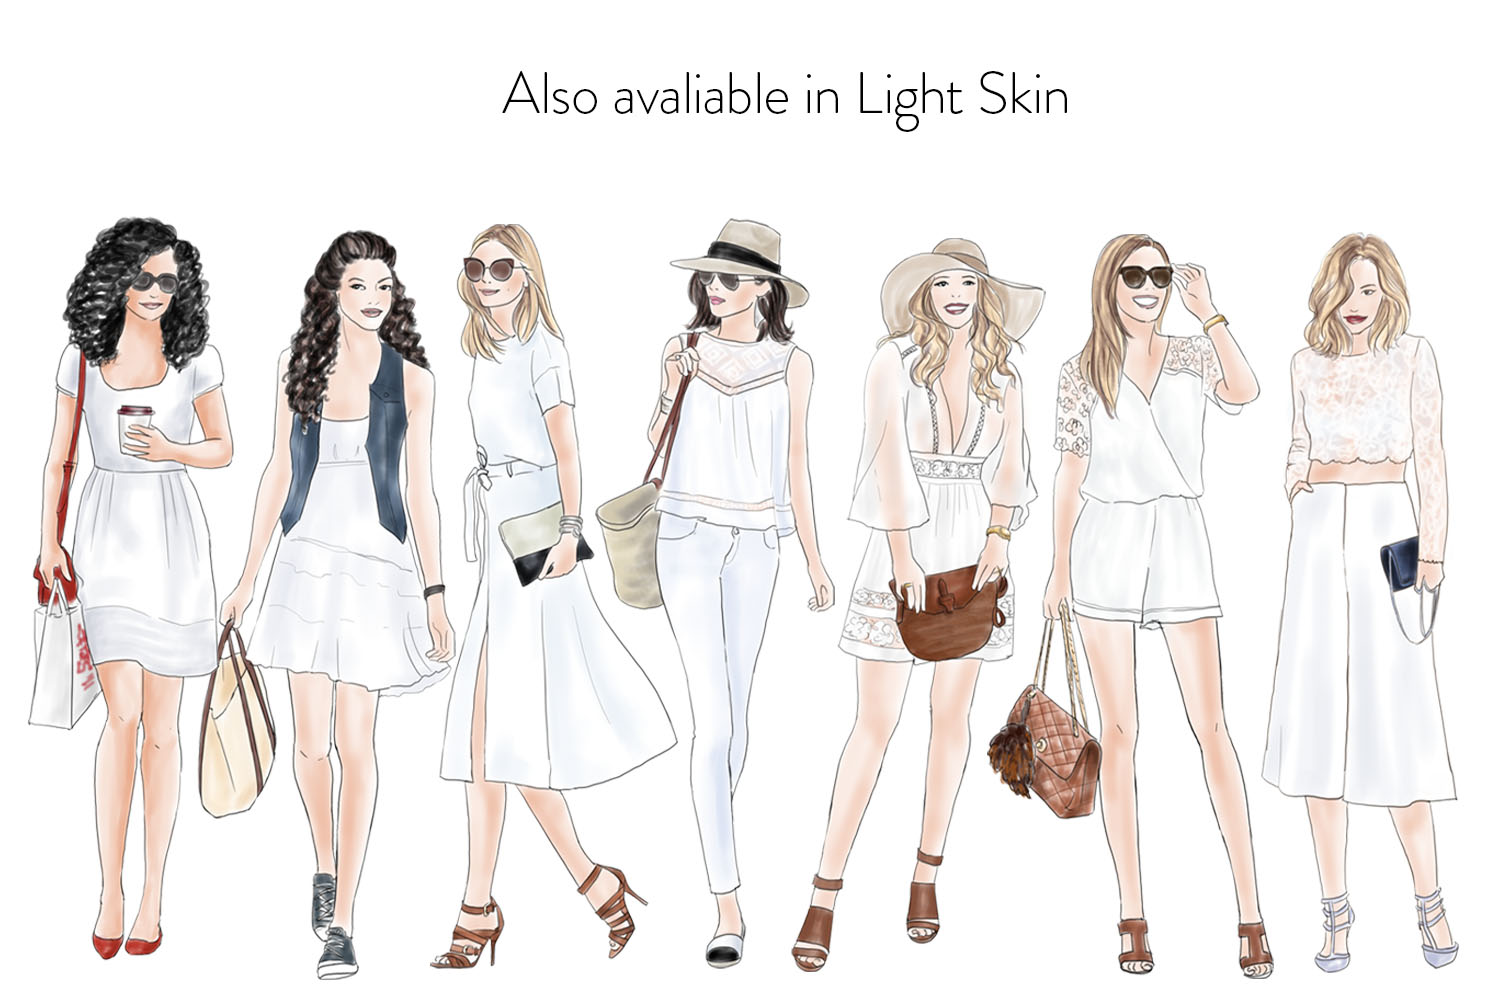 Fashion illustration clipart - Girls in summer white - Dark skin example image 4